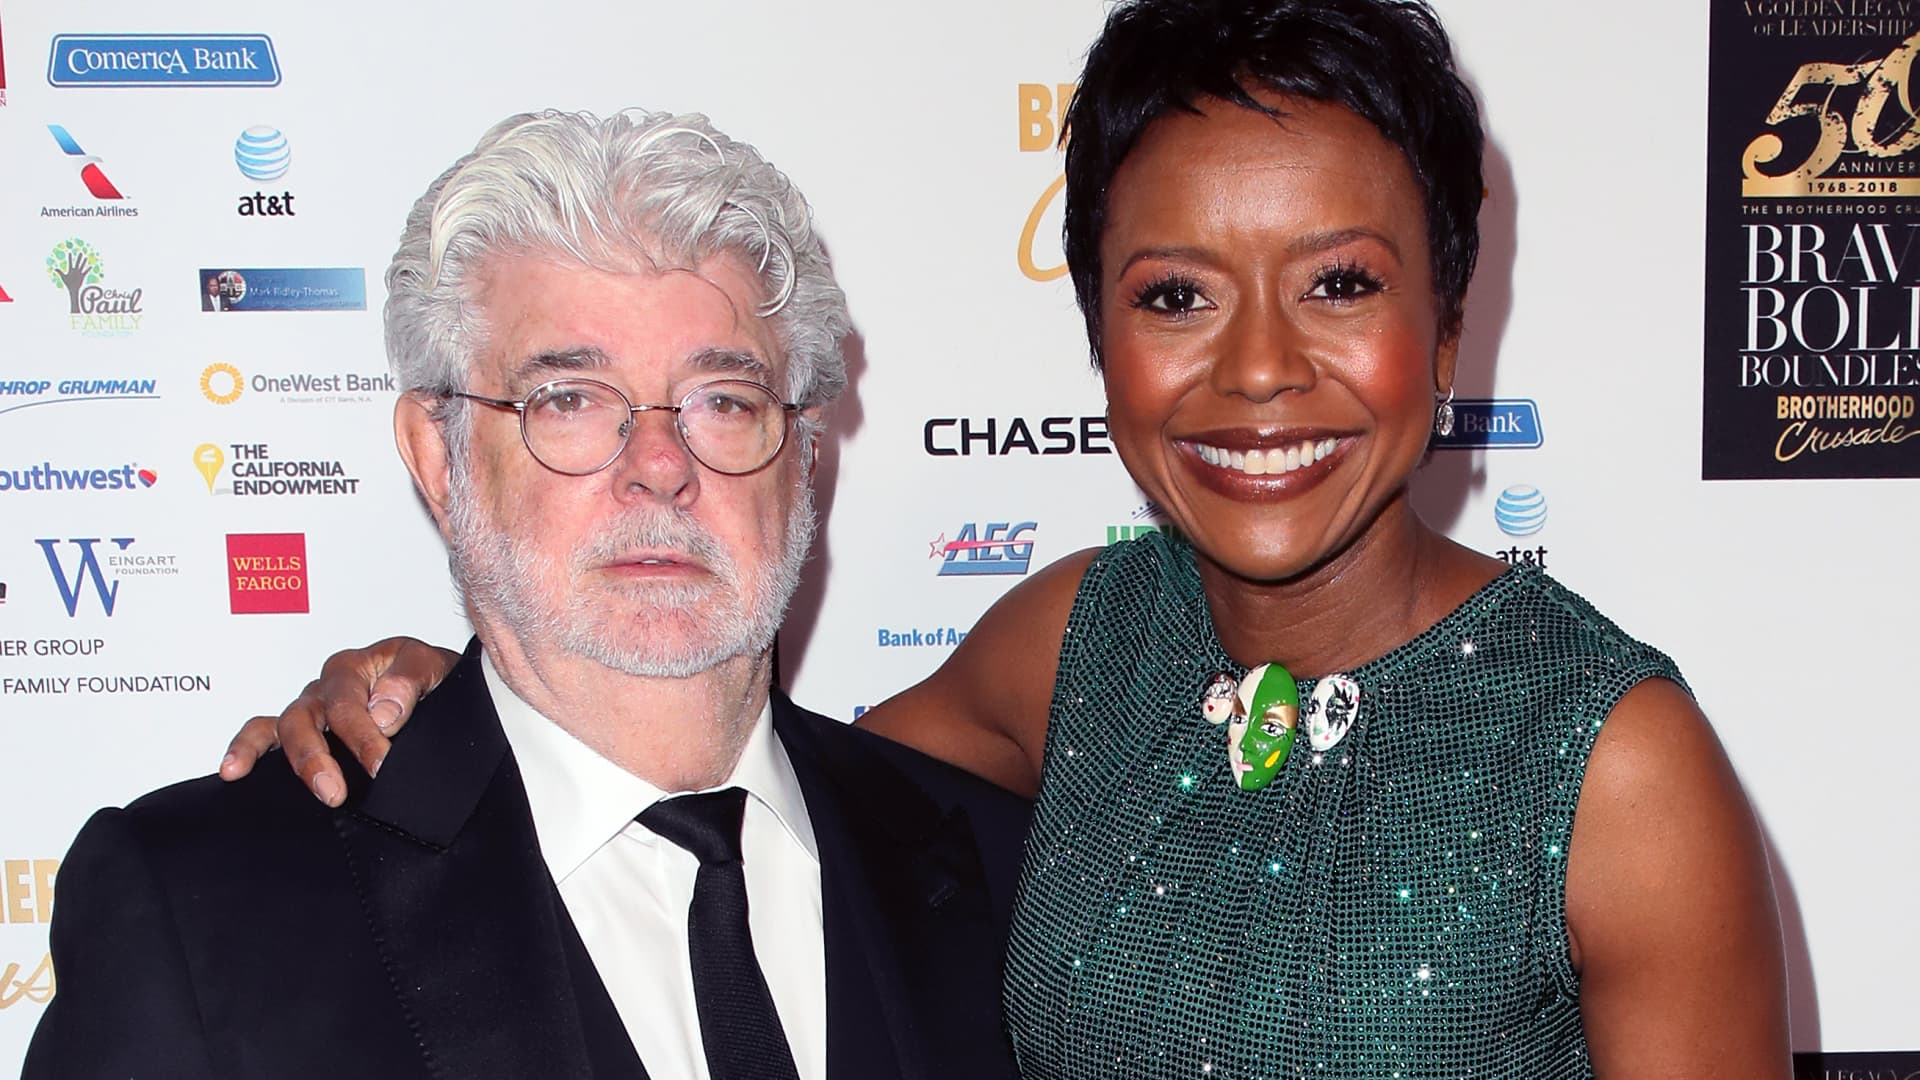 BEVERLY HILLS, CALIFORNIA - George Lucas and Mellody Hobson attend the Brotherhood Crusade's 50th Pioneer of African American Achievement Award Dinner at The Beverly Hilton Hotel on December 07, 2018.